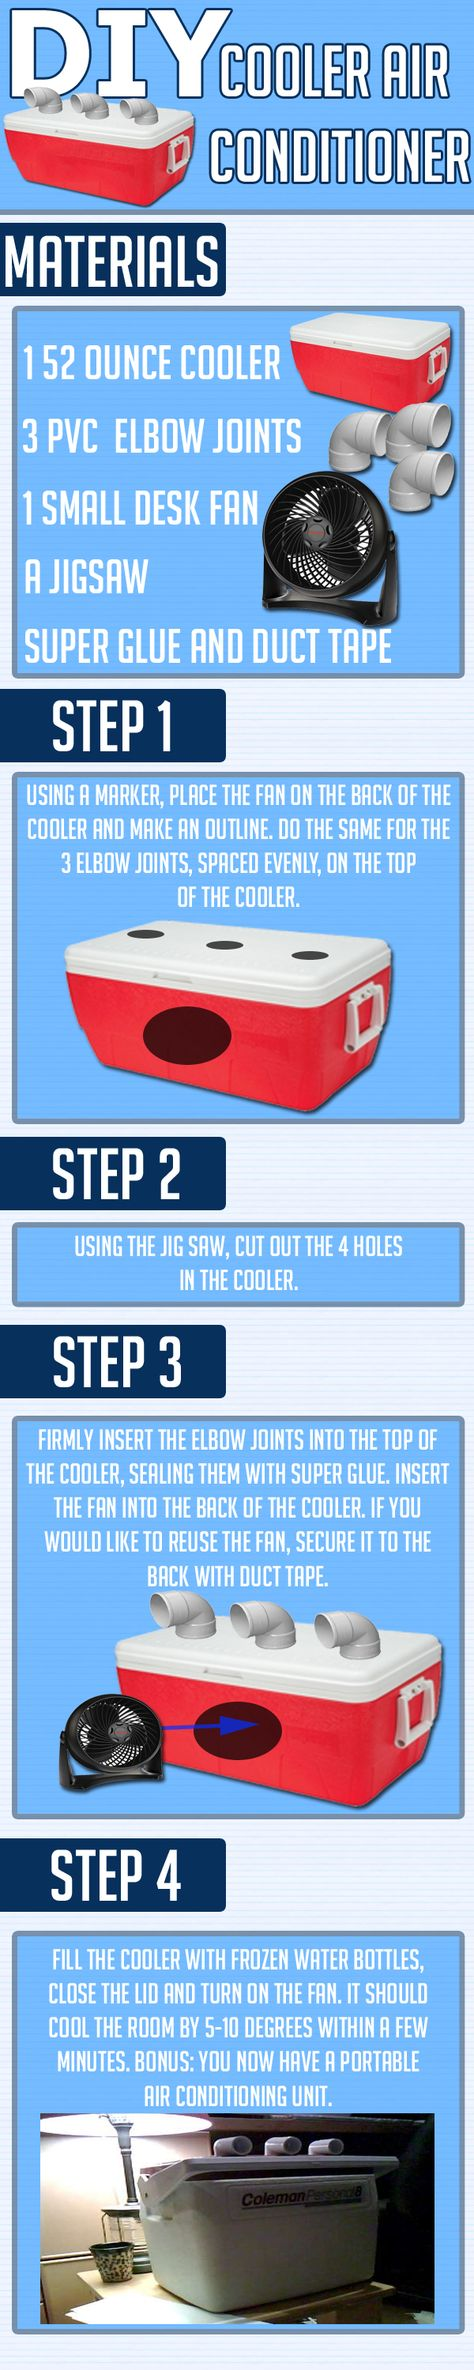 DIY Cooler Air Conditioner- you just might need this for #FasterHorses in July!